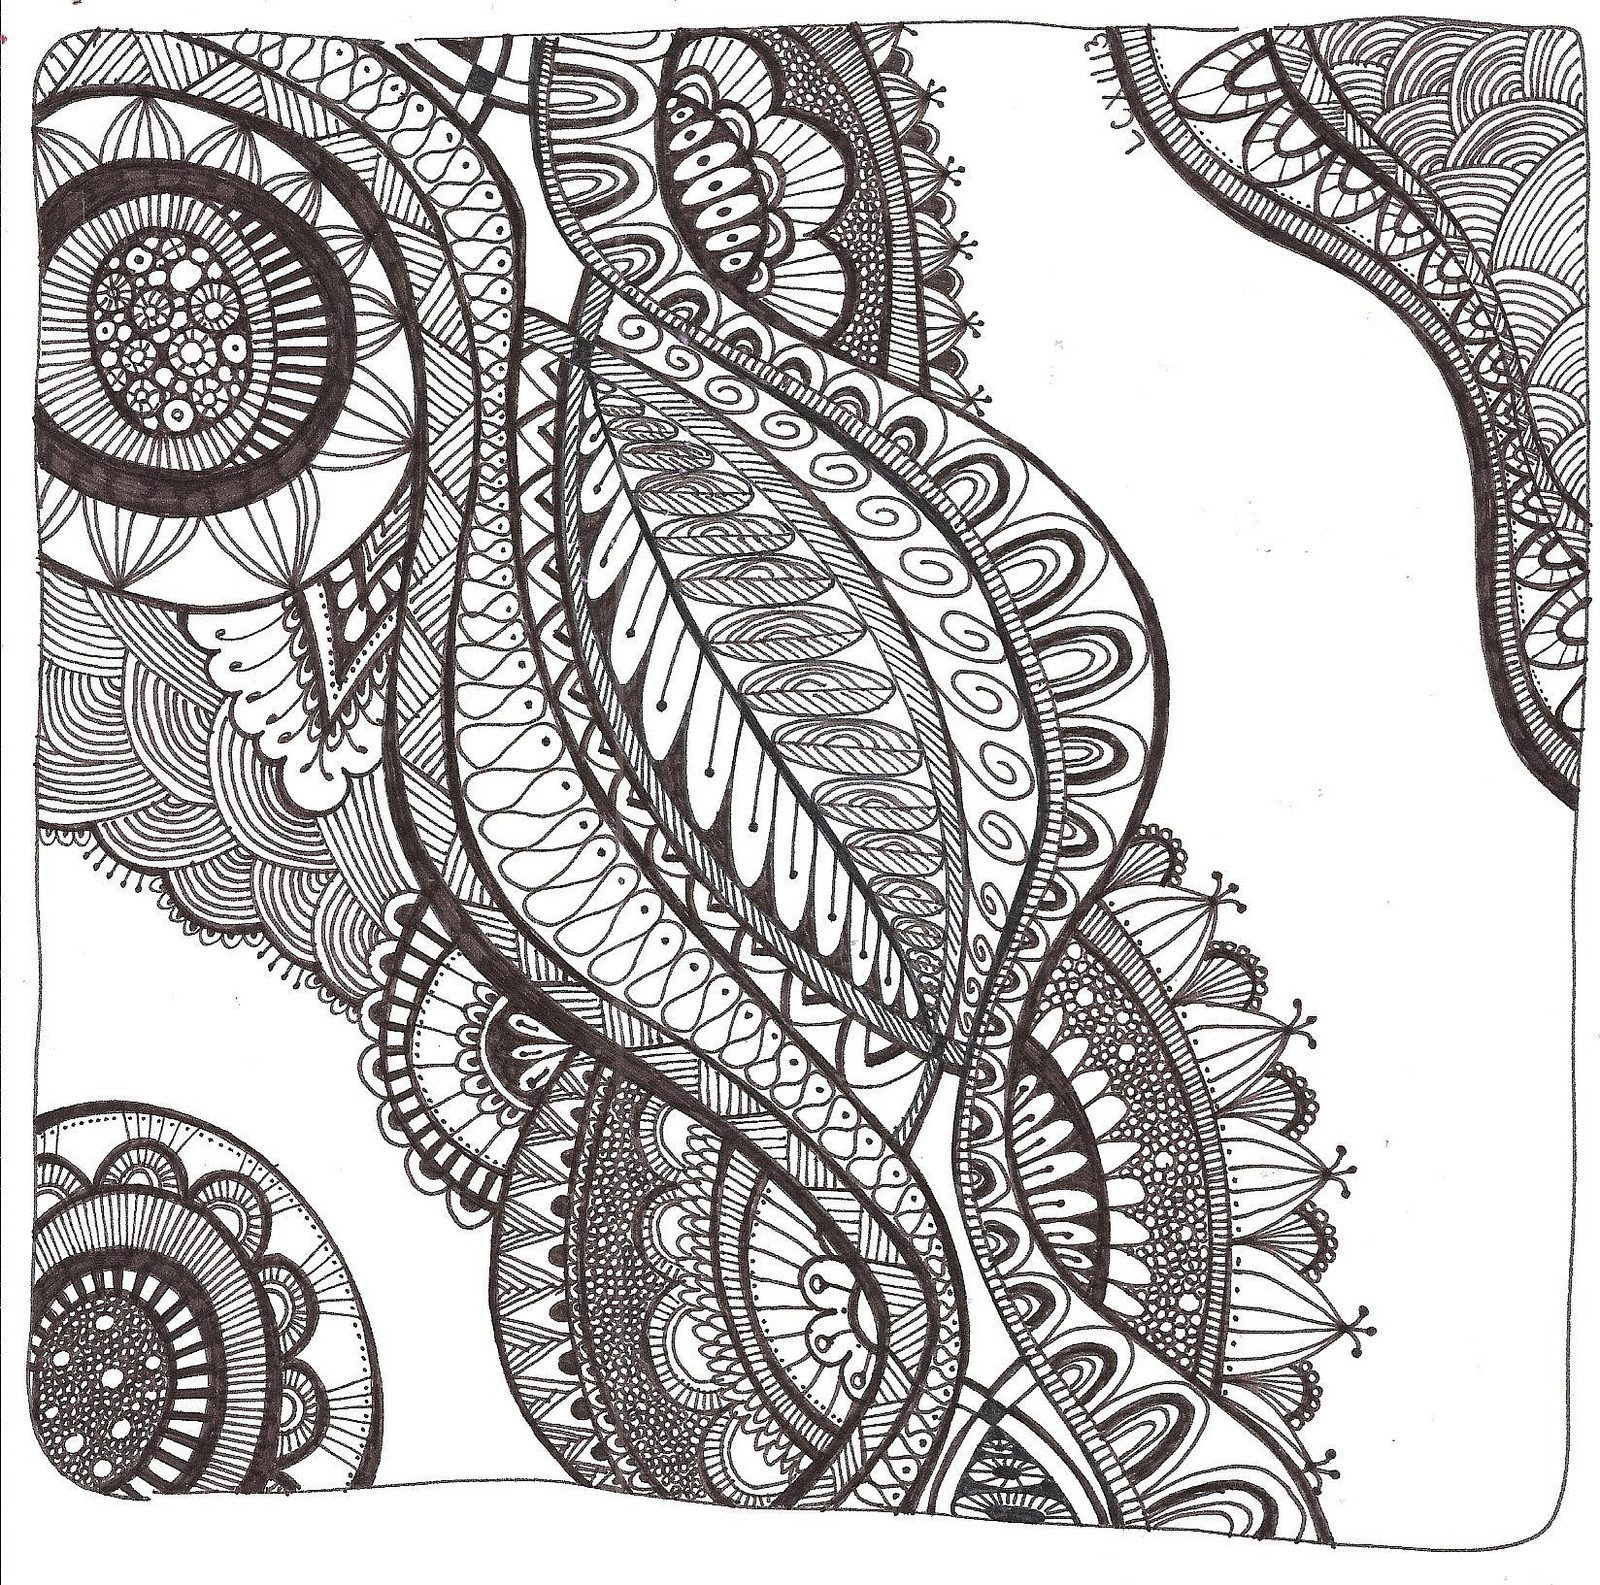 Best ideas about Free Printable Coloring Pages For Adults Hard That Are Zentangles . Save or Pin Free Printable Zentangle Coloring Pages for Adults Now.